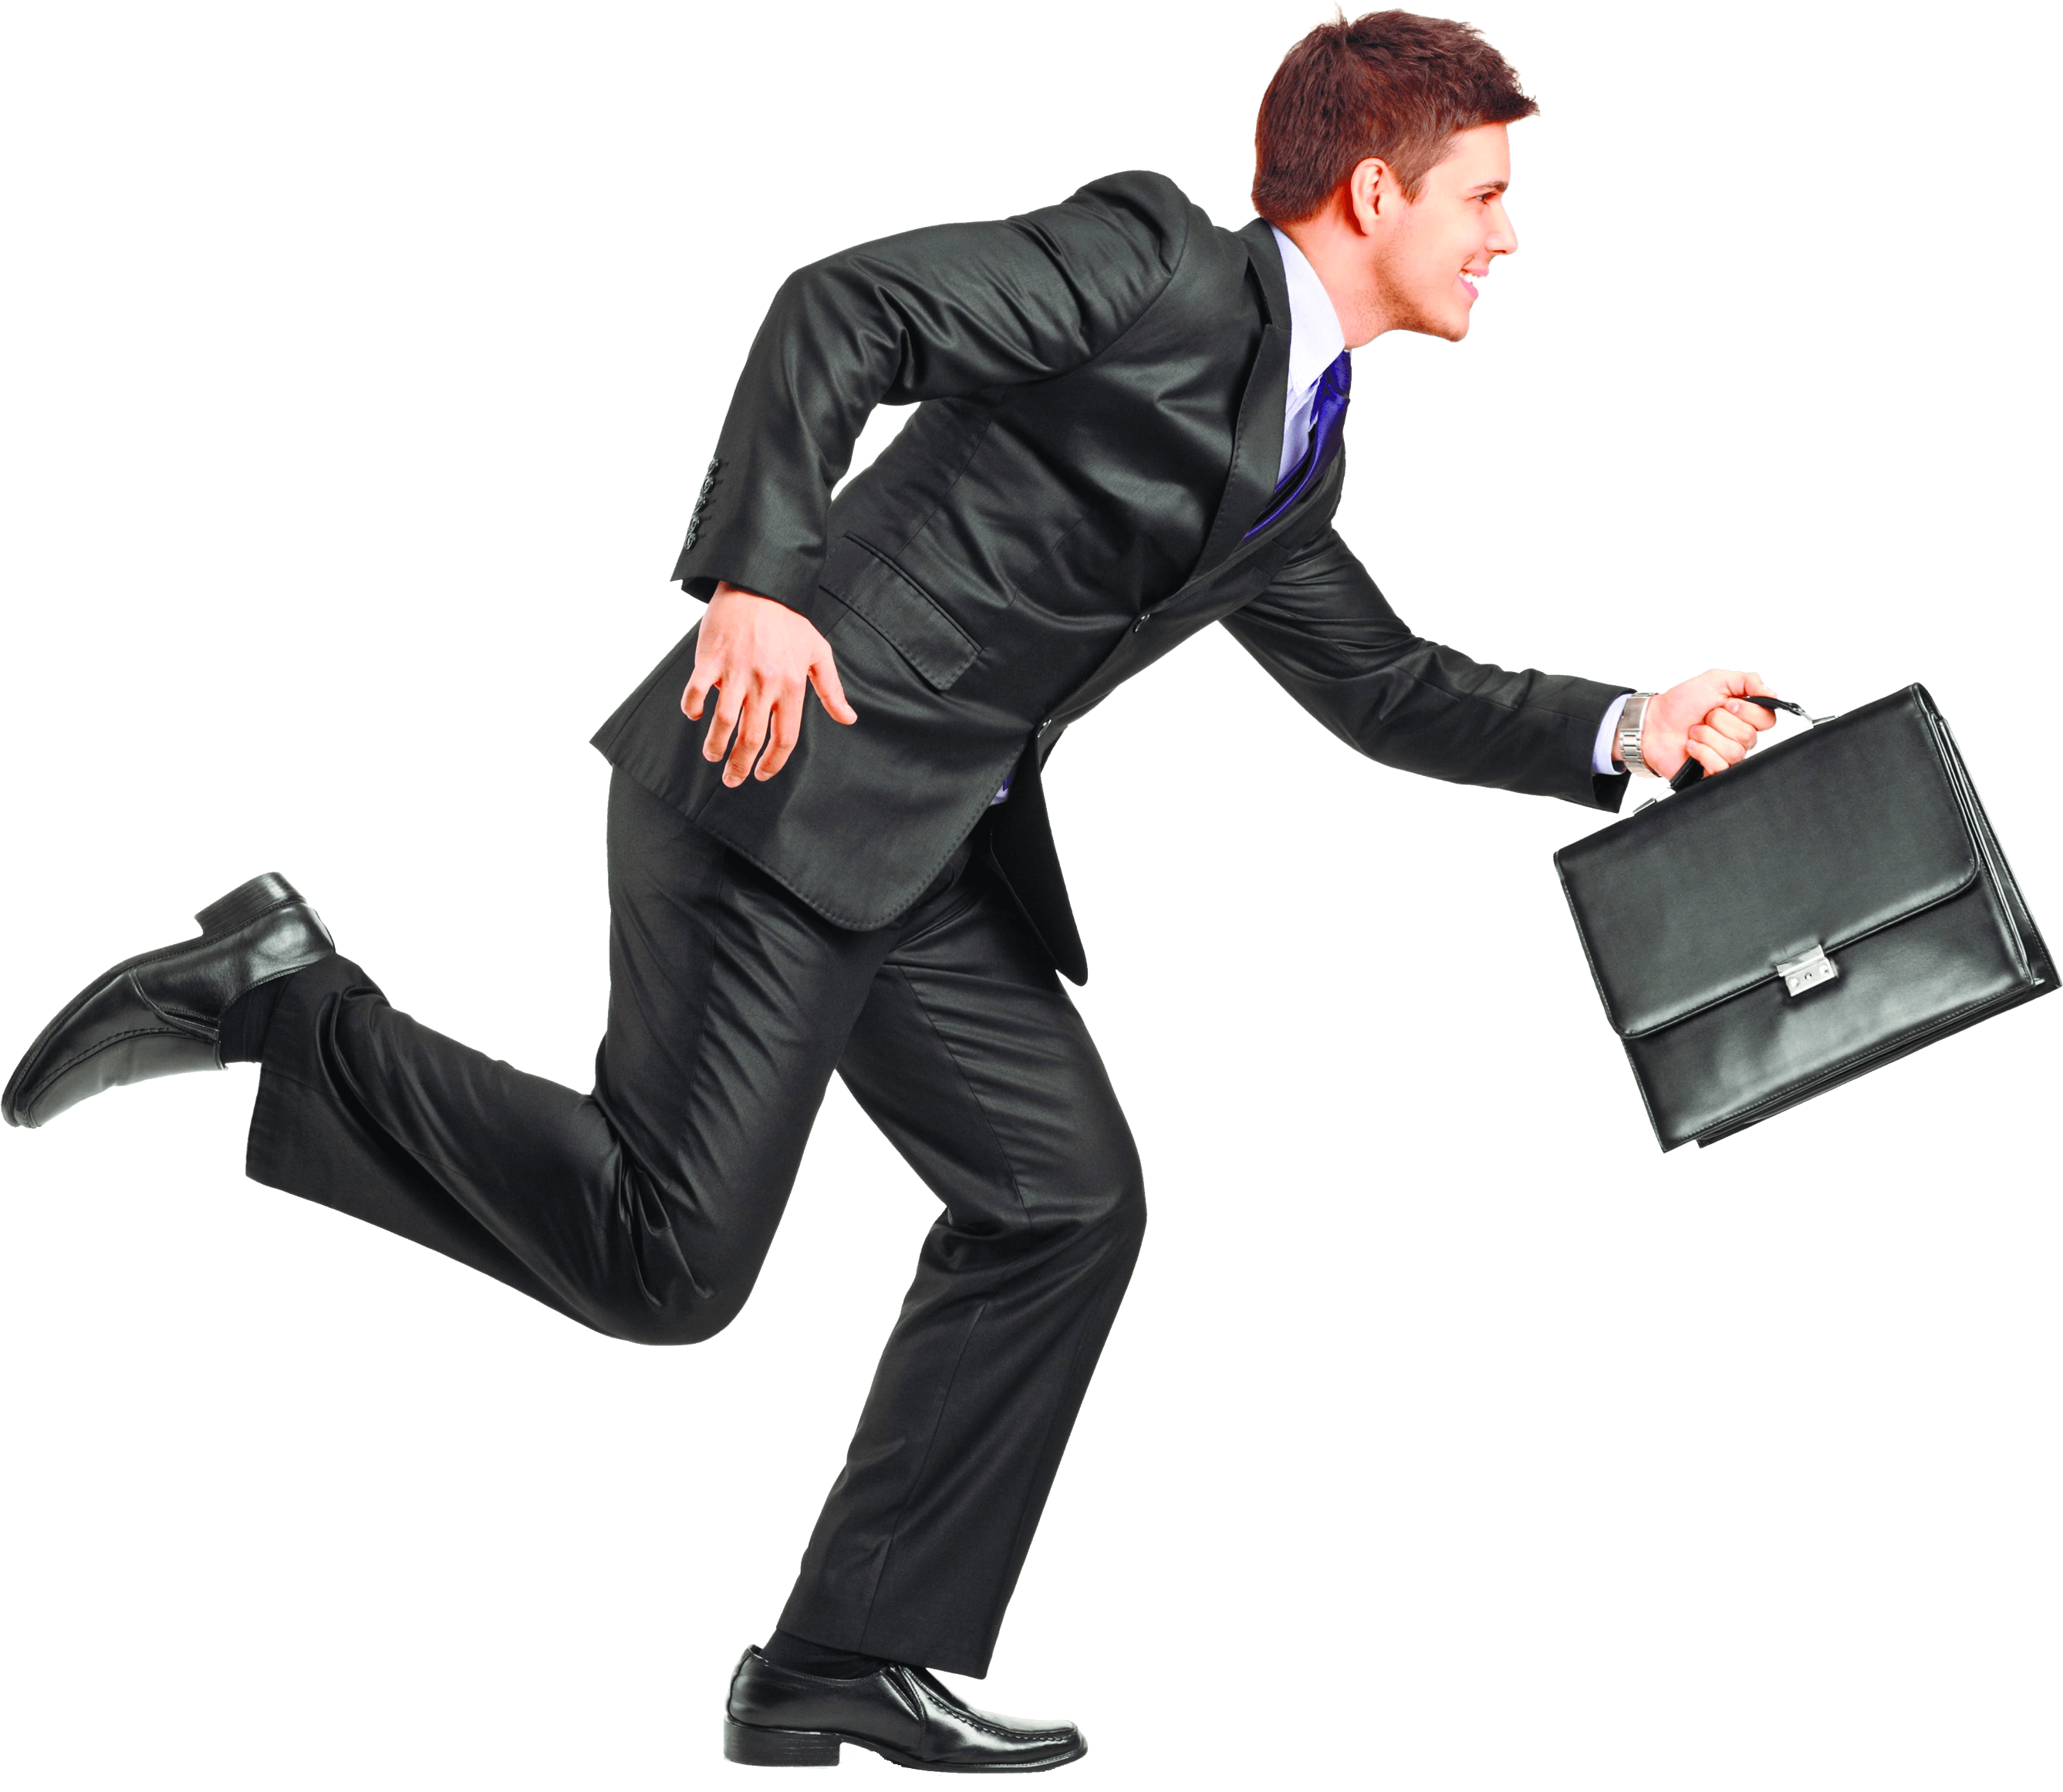 Businessman with a suitcase smiling png. Running transparent stickpng download